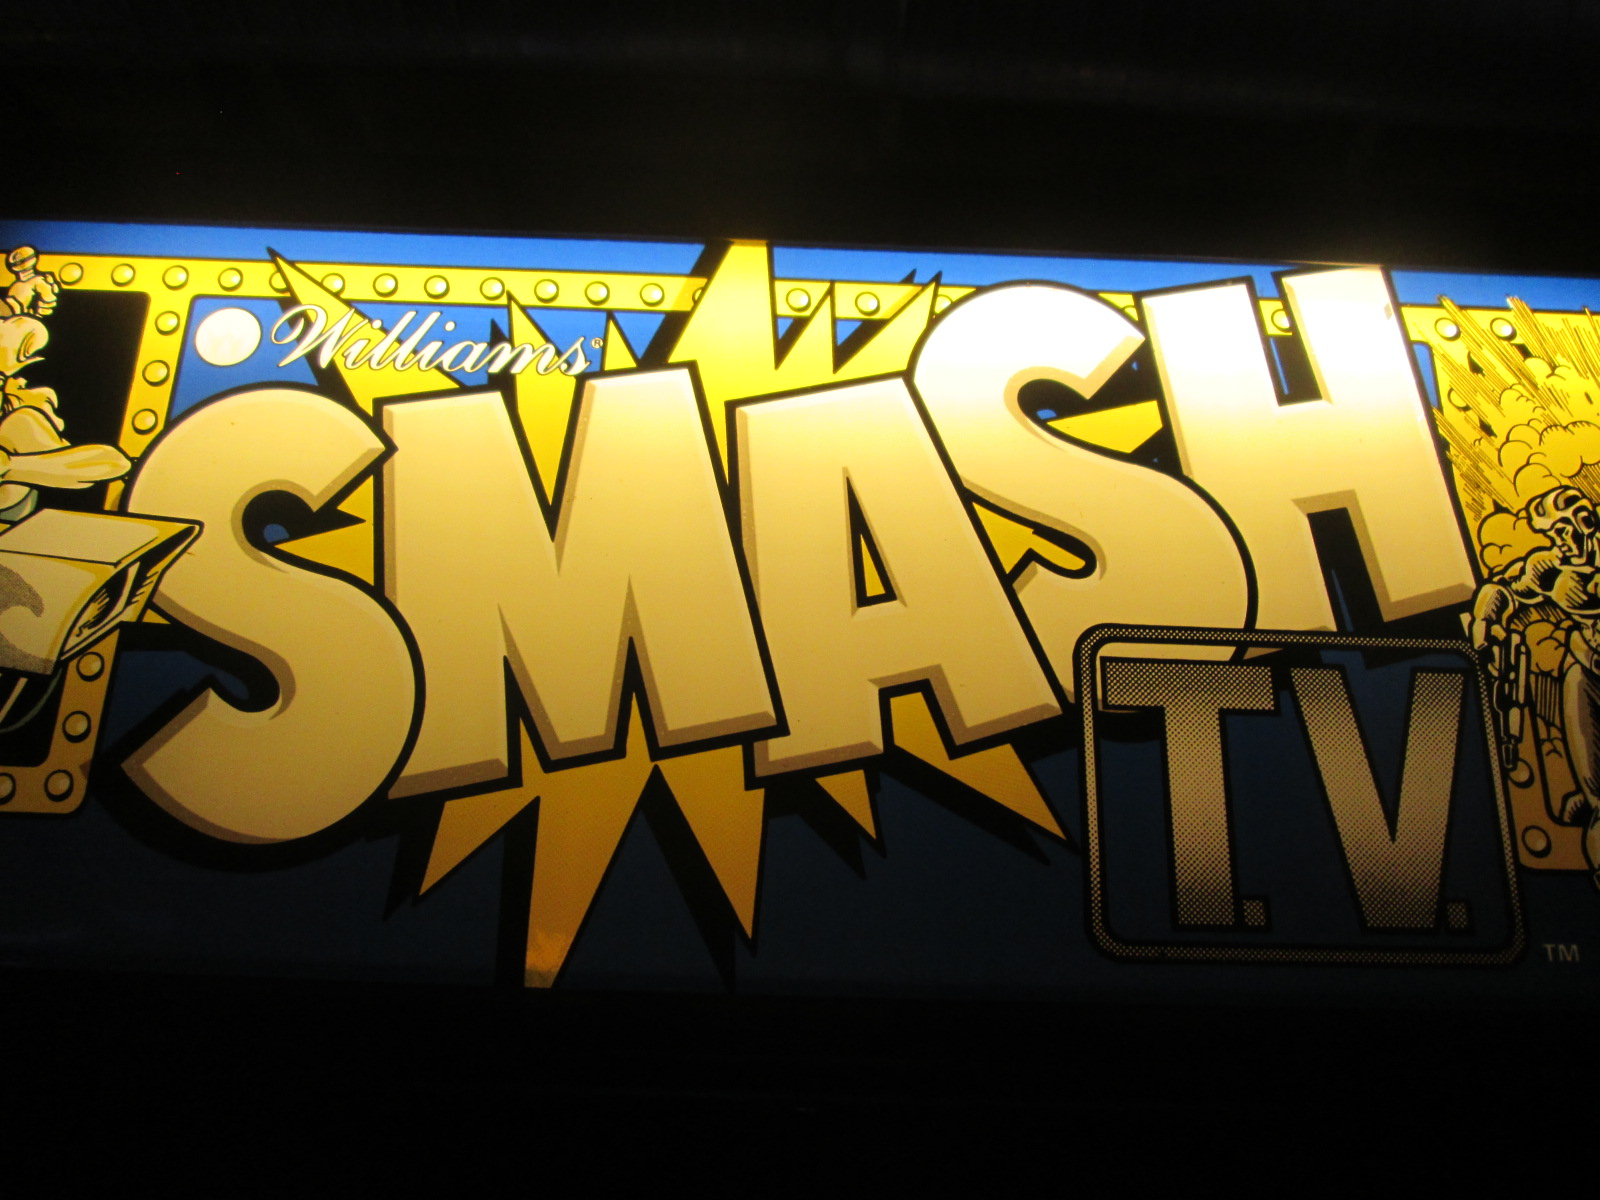 ed1475: Smash TV (Arcade) 274,100 points on 2016-08-28 16:37:45